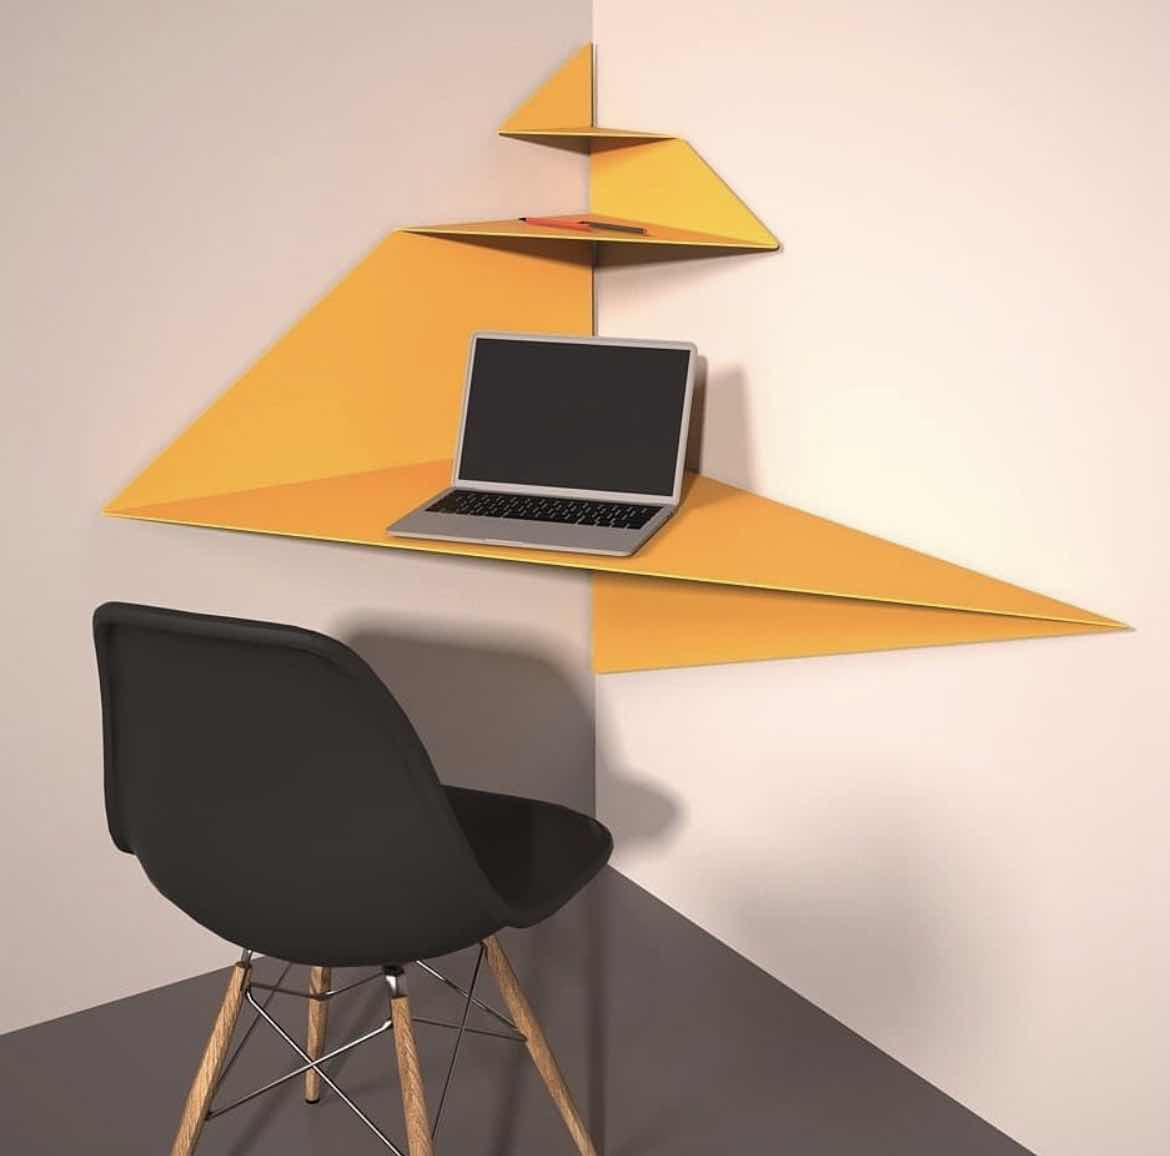 Sculptural Desk Design